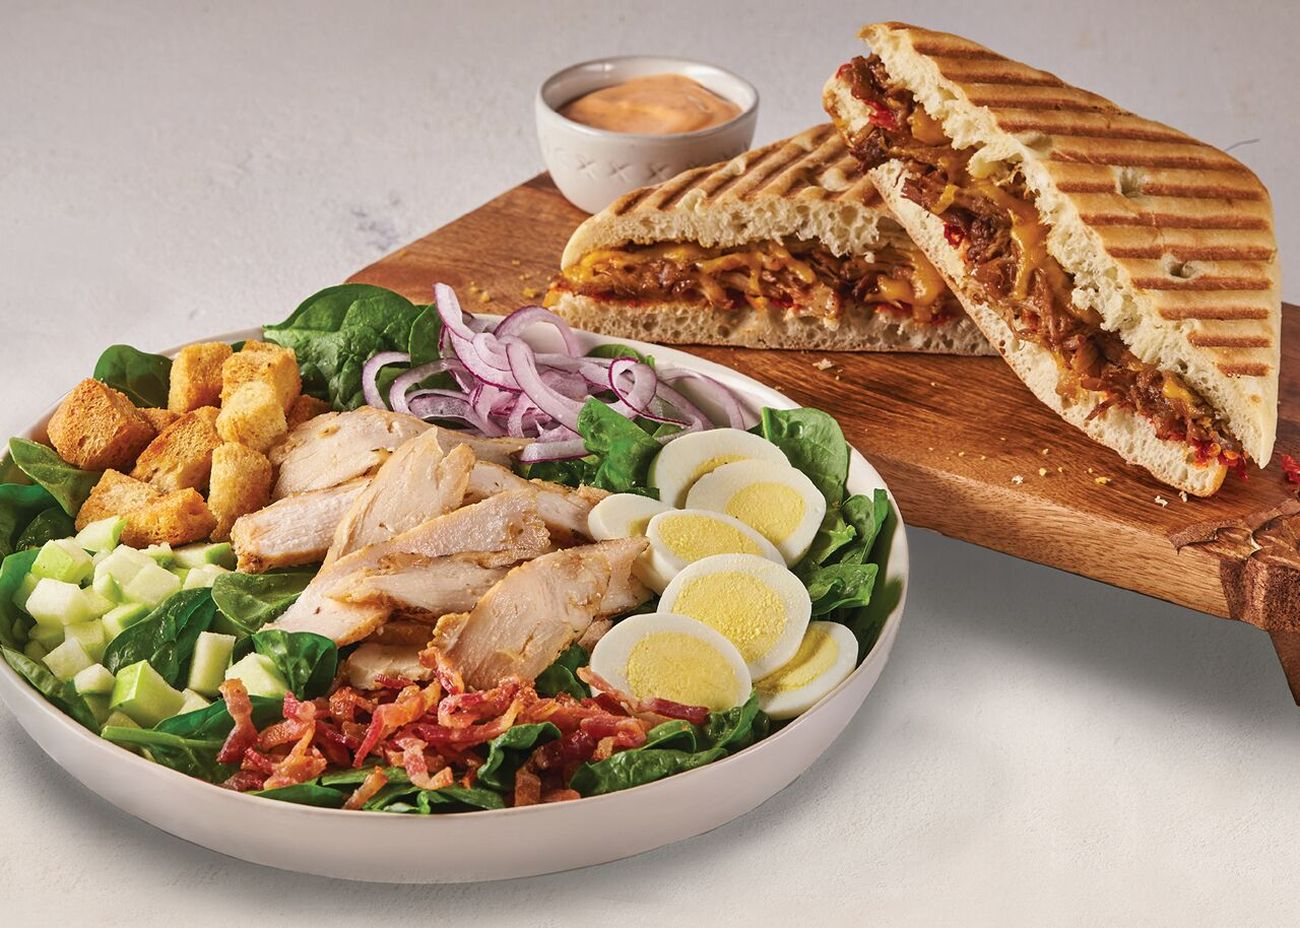 Corner Bakery Cafe Warm Bacon & Spinach Salad with Spicy Balsamic Pulled Pork Panini